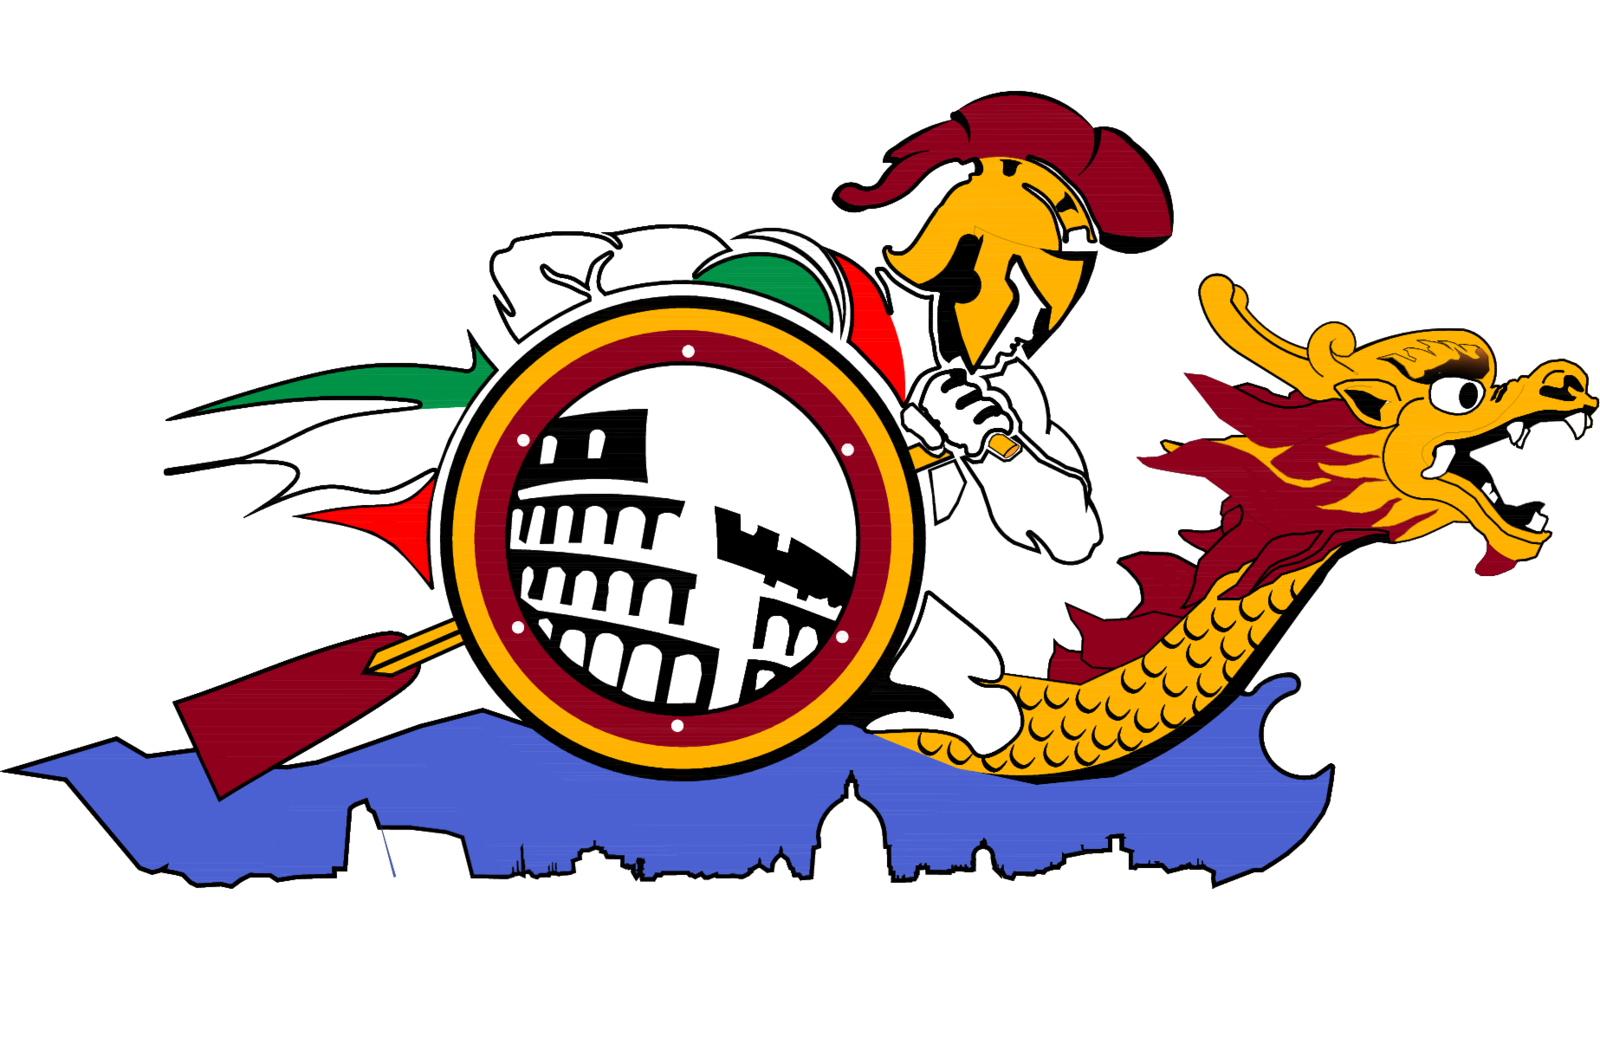 http://www.romadragoneur2016.it/